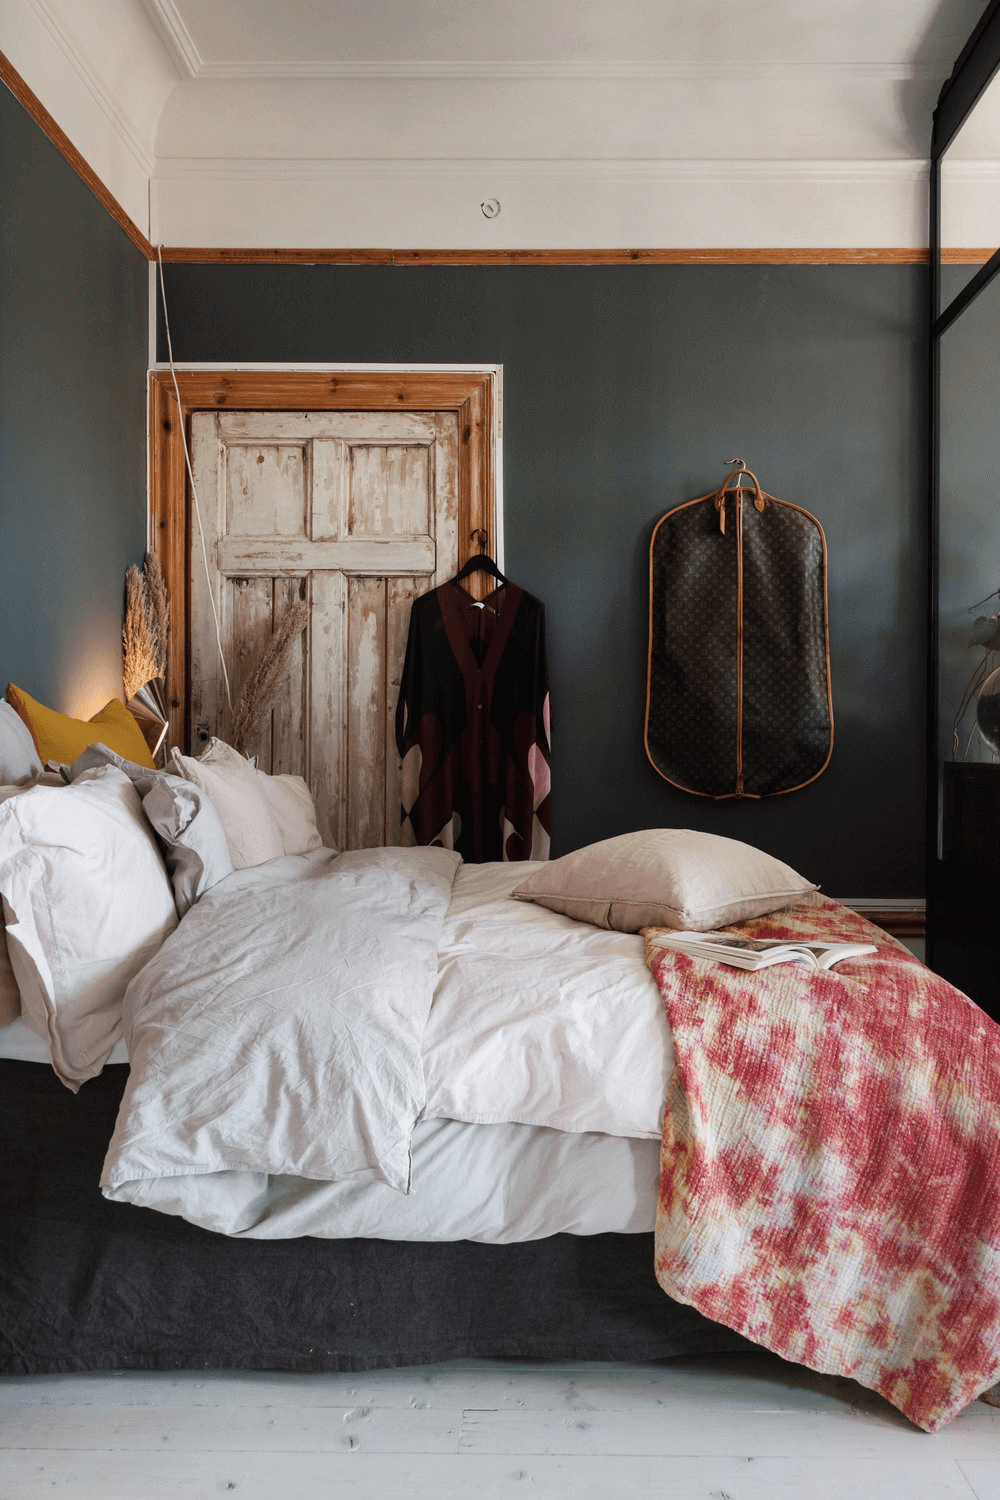 this is a wooden styled Scandinavian apartment with a bedroom that has clothes hanging and textured bedding